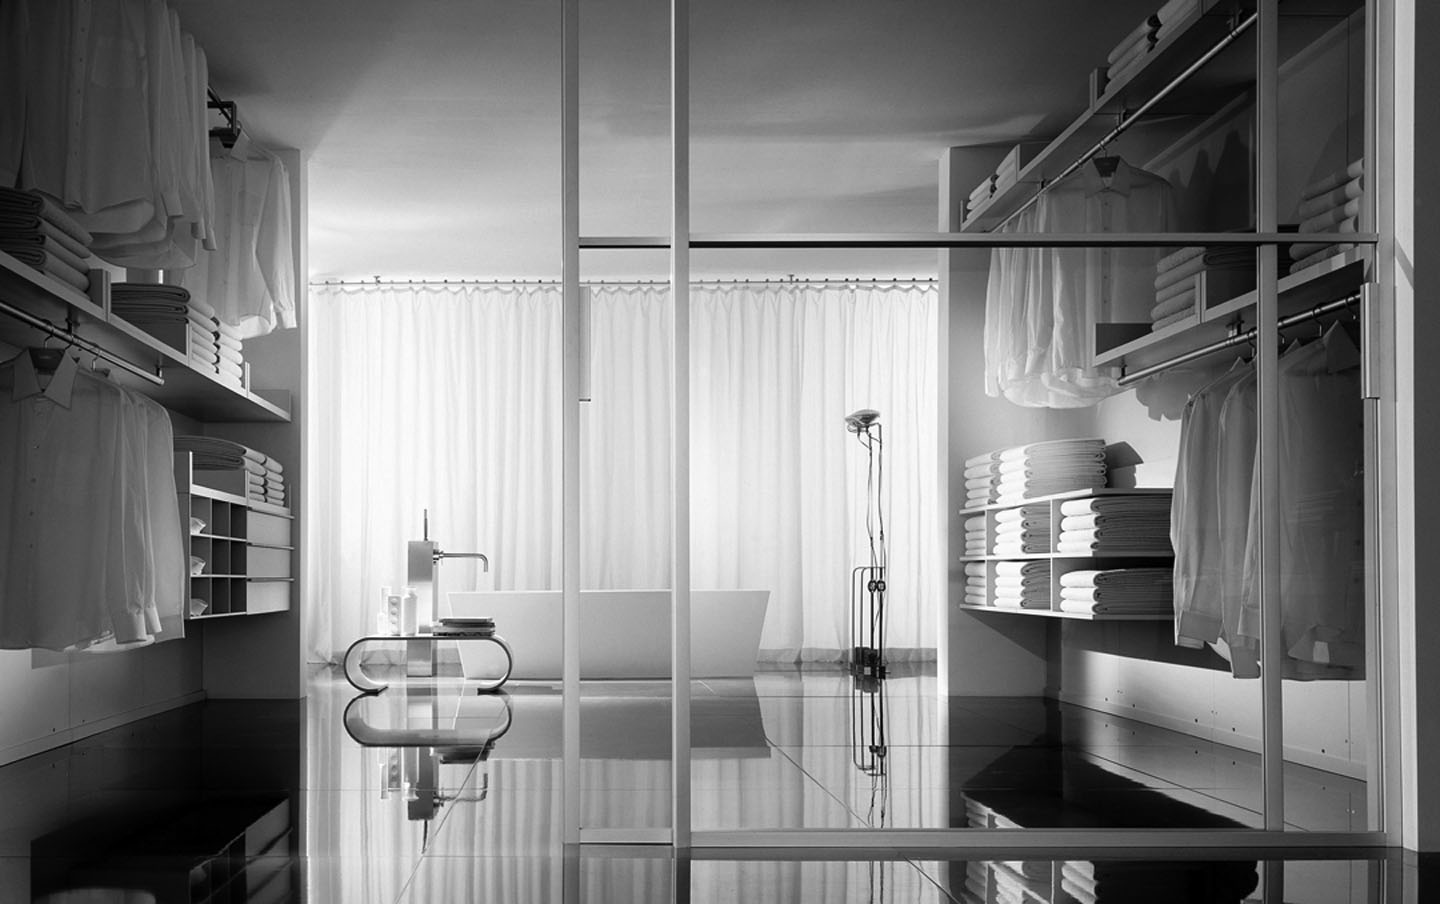 Modern interior design toio ultra modern minimalist floor lamp toio minimalist lamp from flos less is more light as mies van der rohe famously stated floss toio is one of the most beautiful modern up lighters in aloadofball Gallery